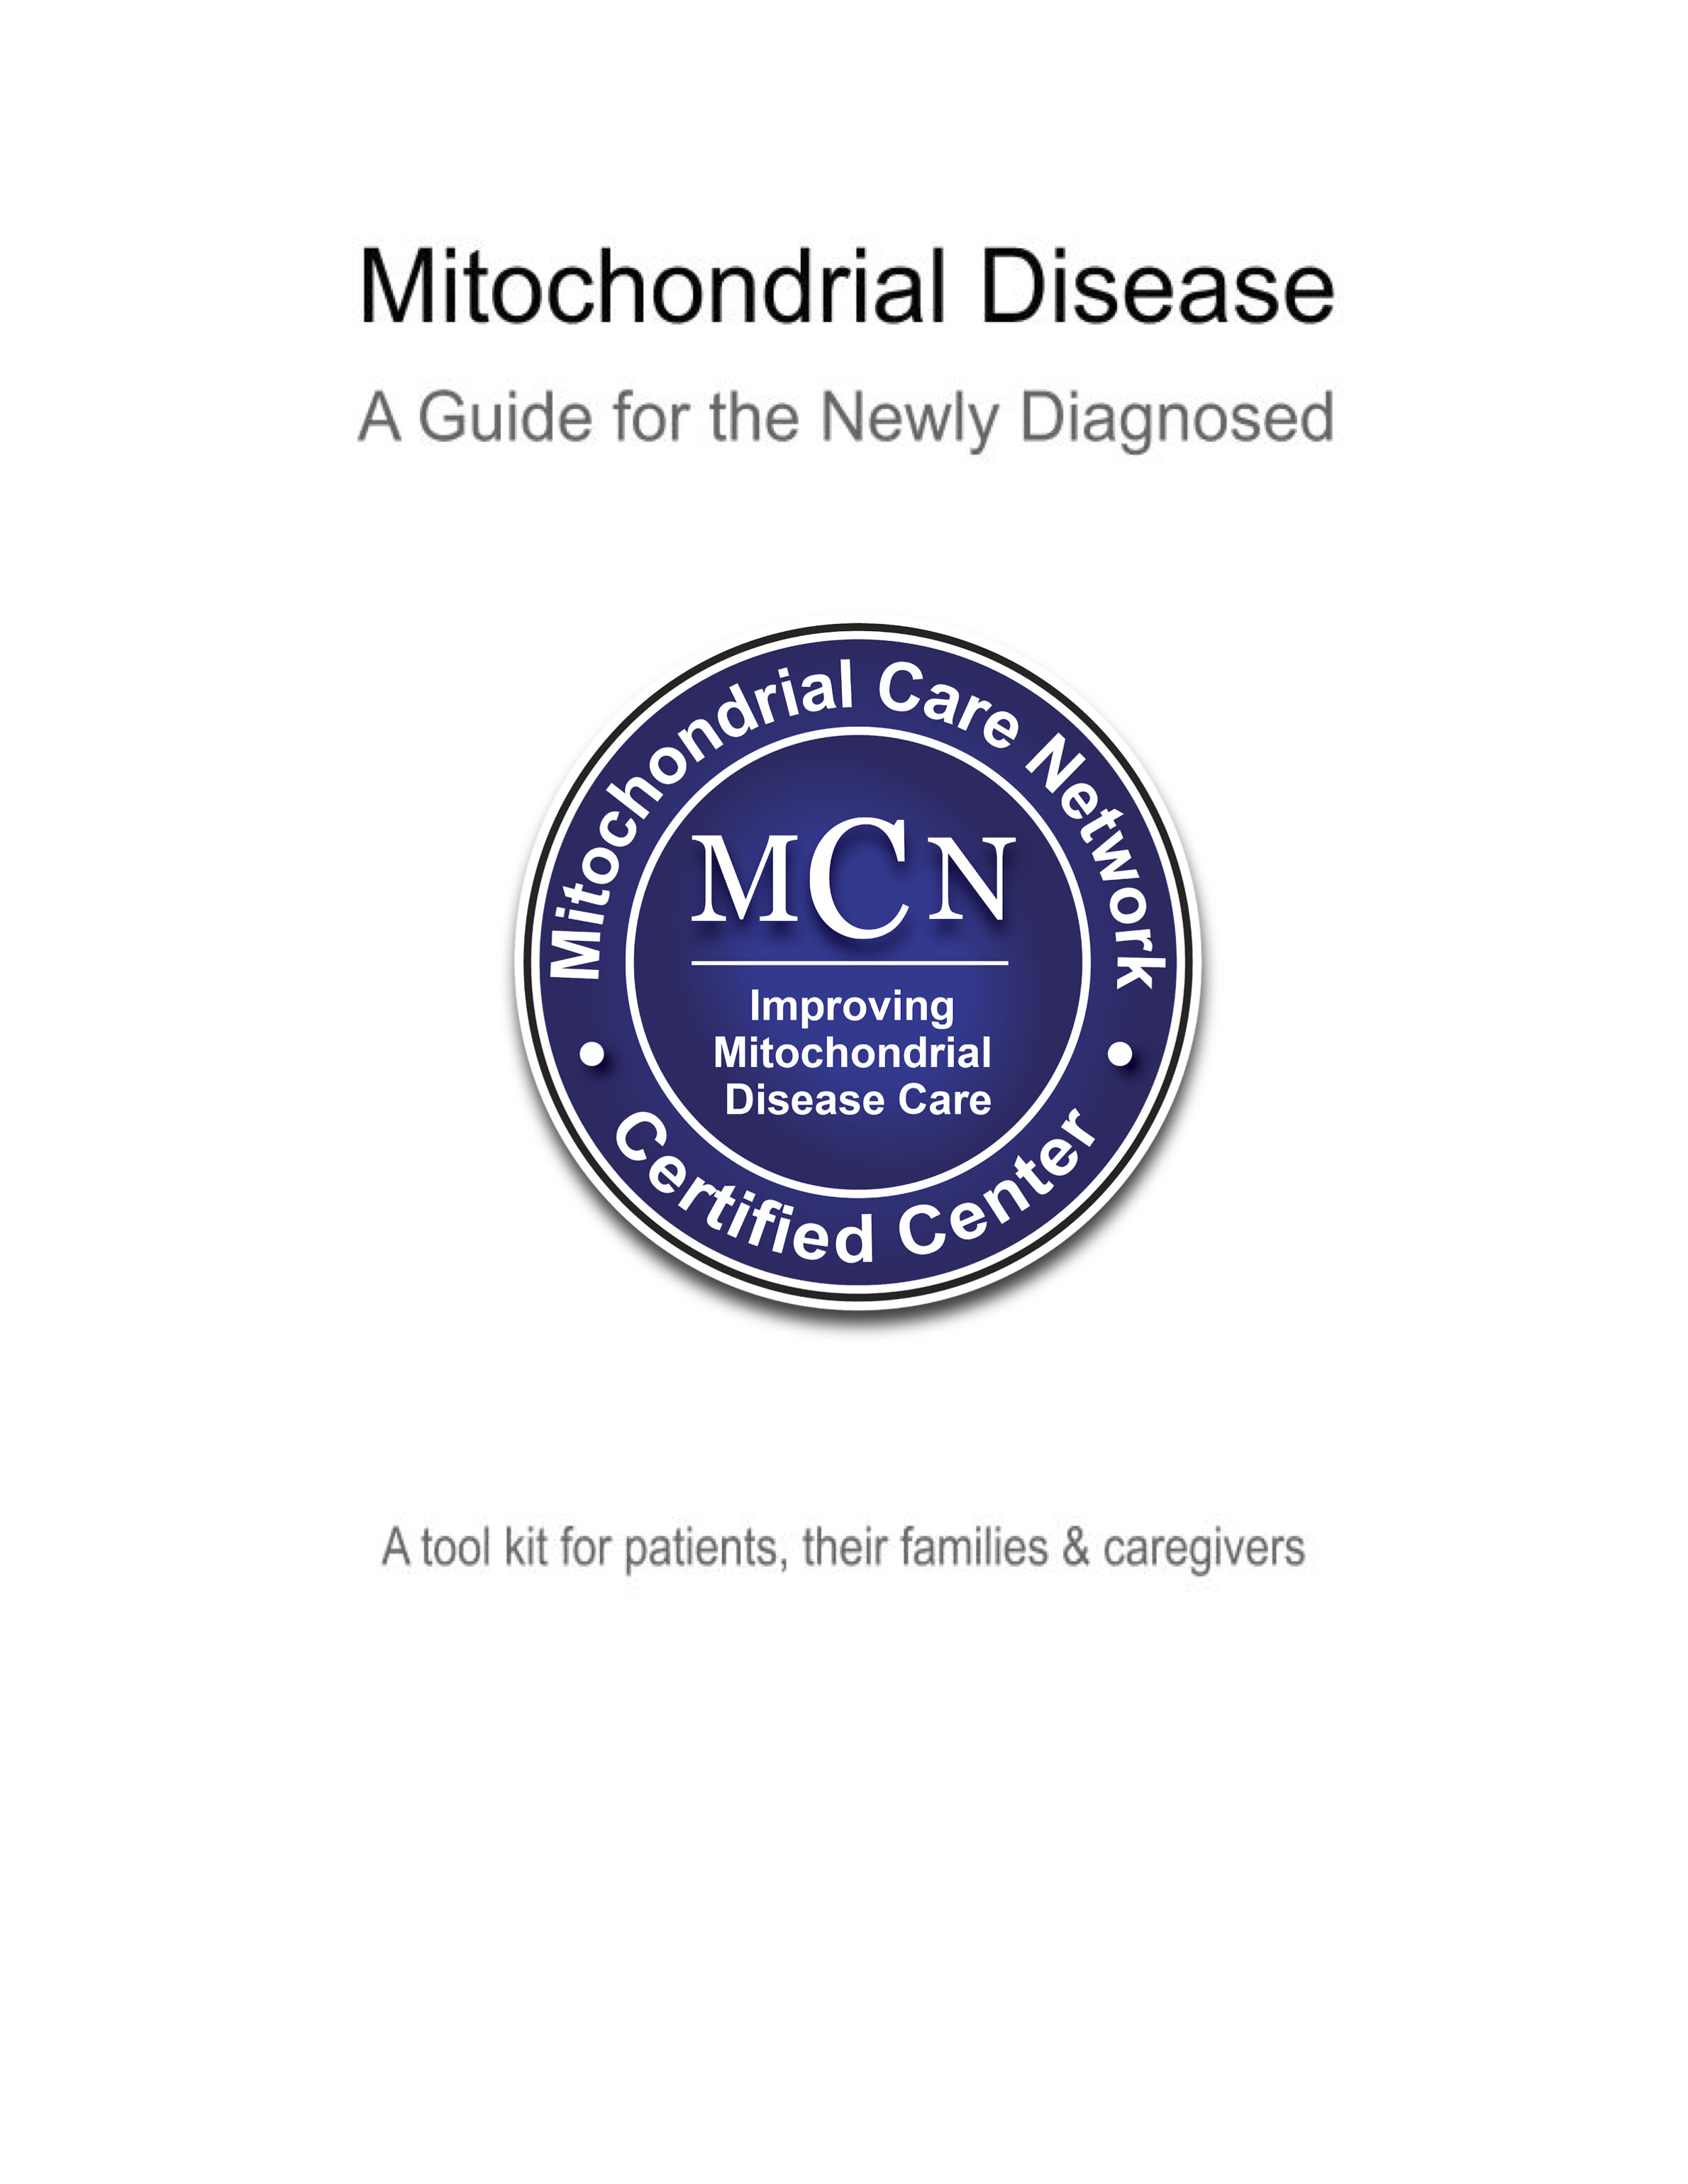 New Patient Guide for Mitochondrial Disease 2019.jpg